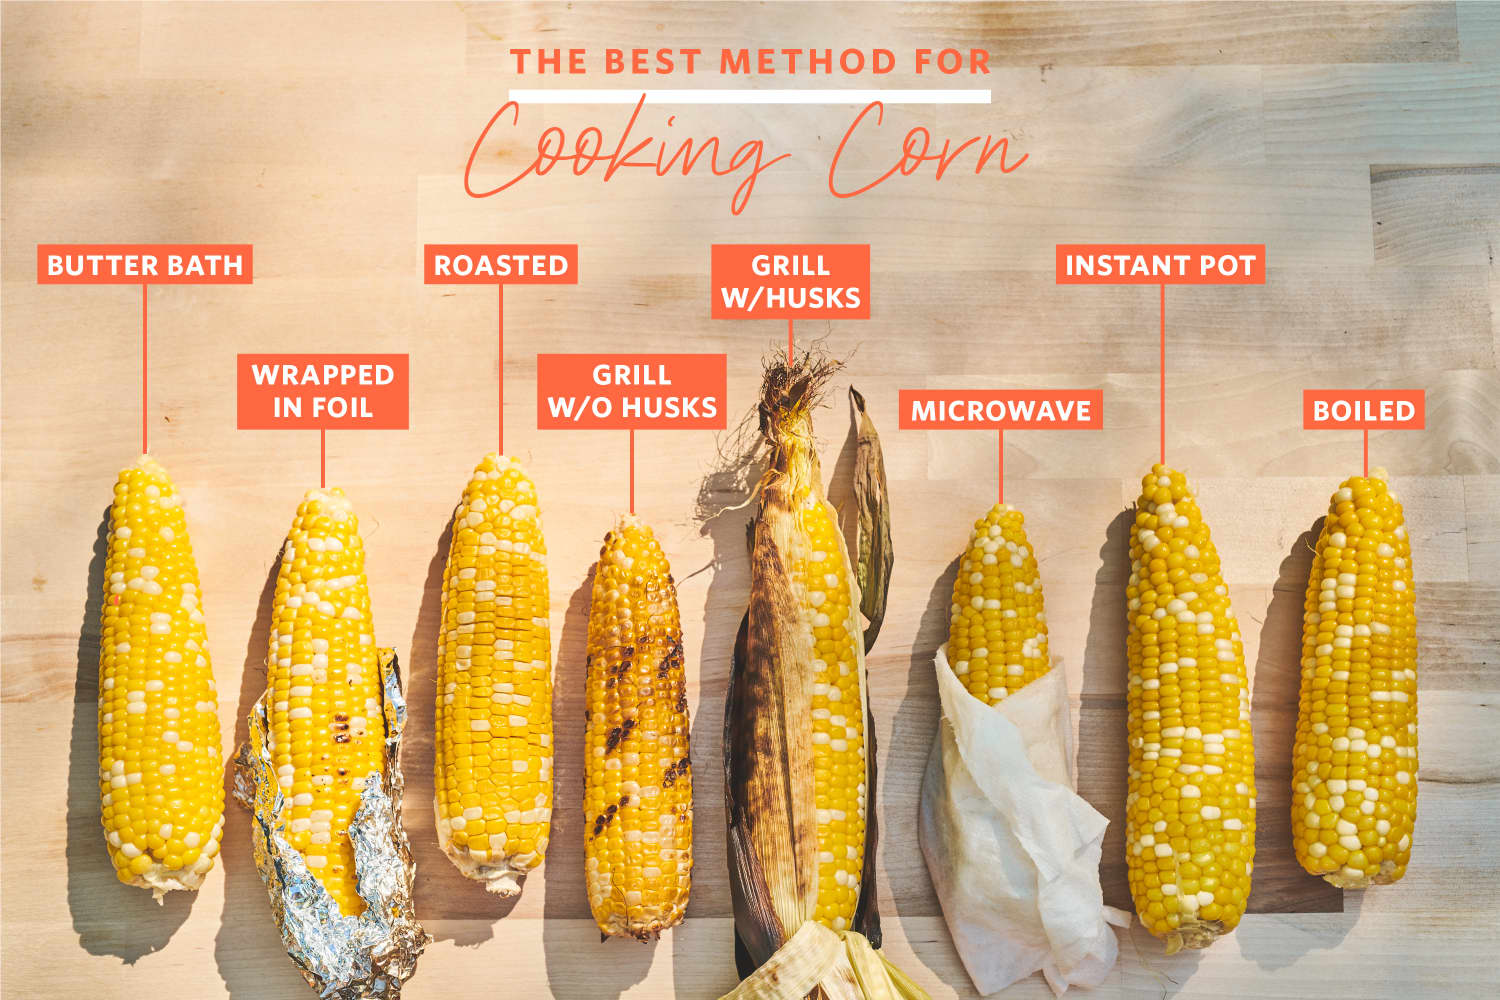 We Tried 8 Methods for Cooking Corn on the Cob and Found a Clear Winner